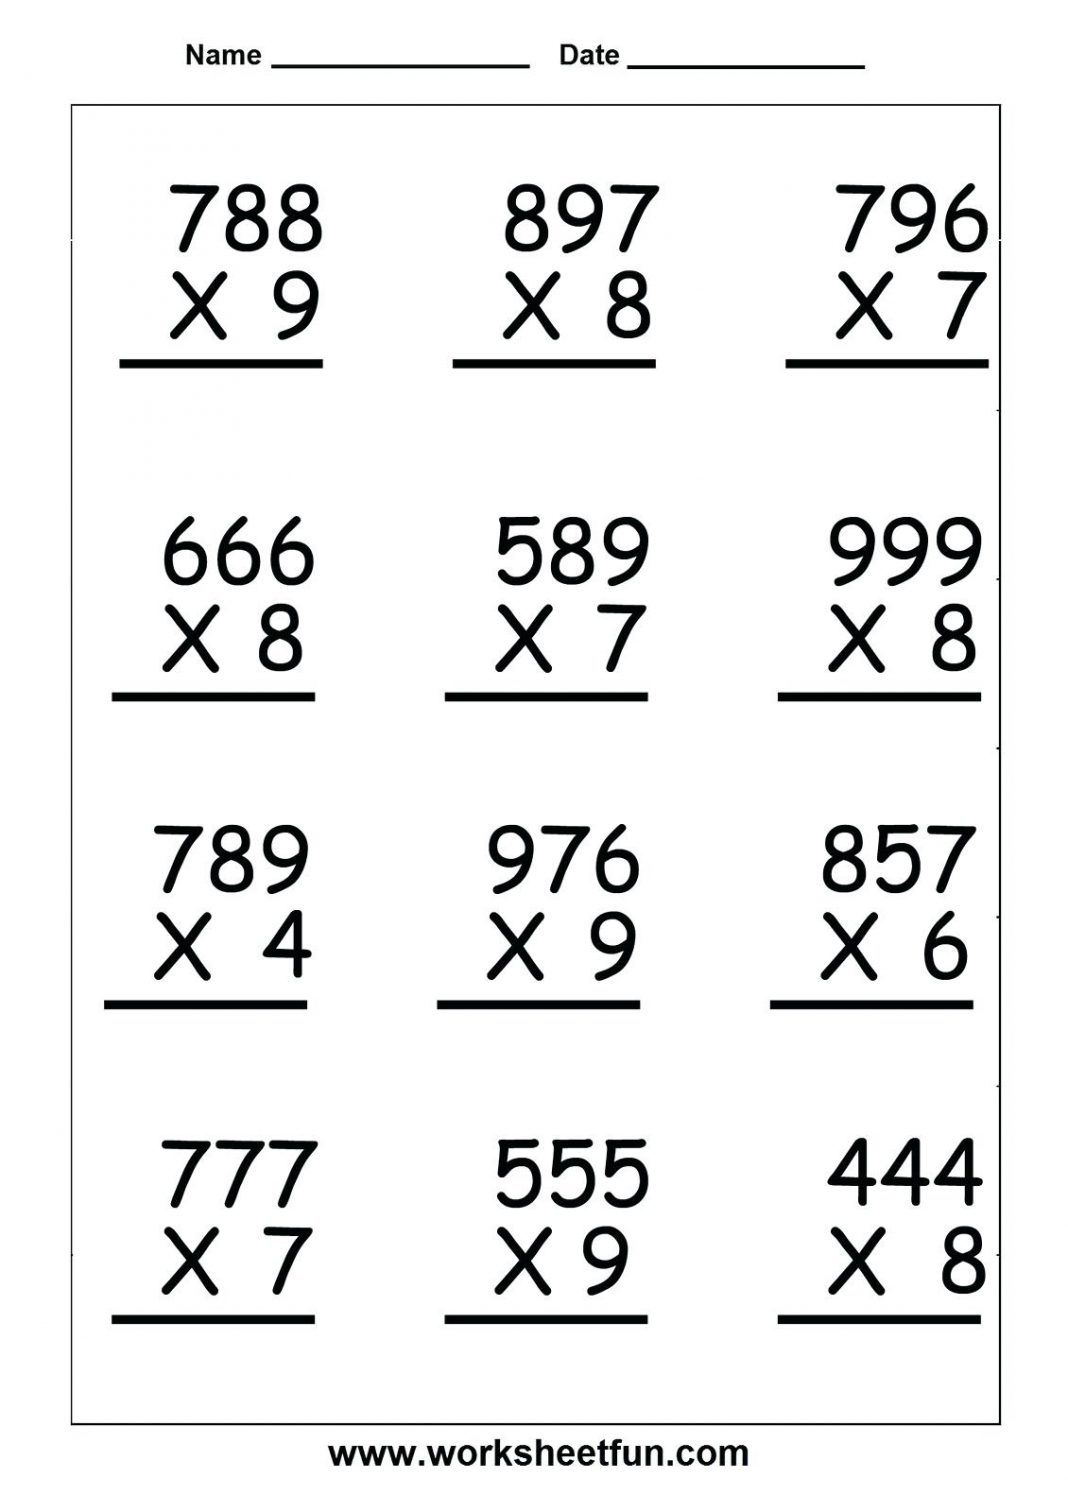 39 Stunning 5th Grade Math Worksheets For You Bacamajalah 4th Grade Math Worksheets Multiplication Worksheets Printable Math Worksheets